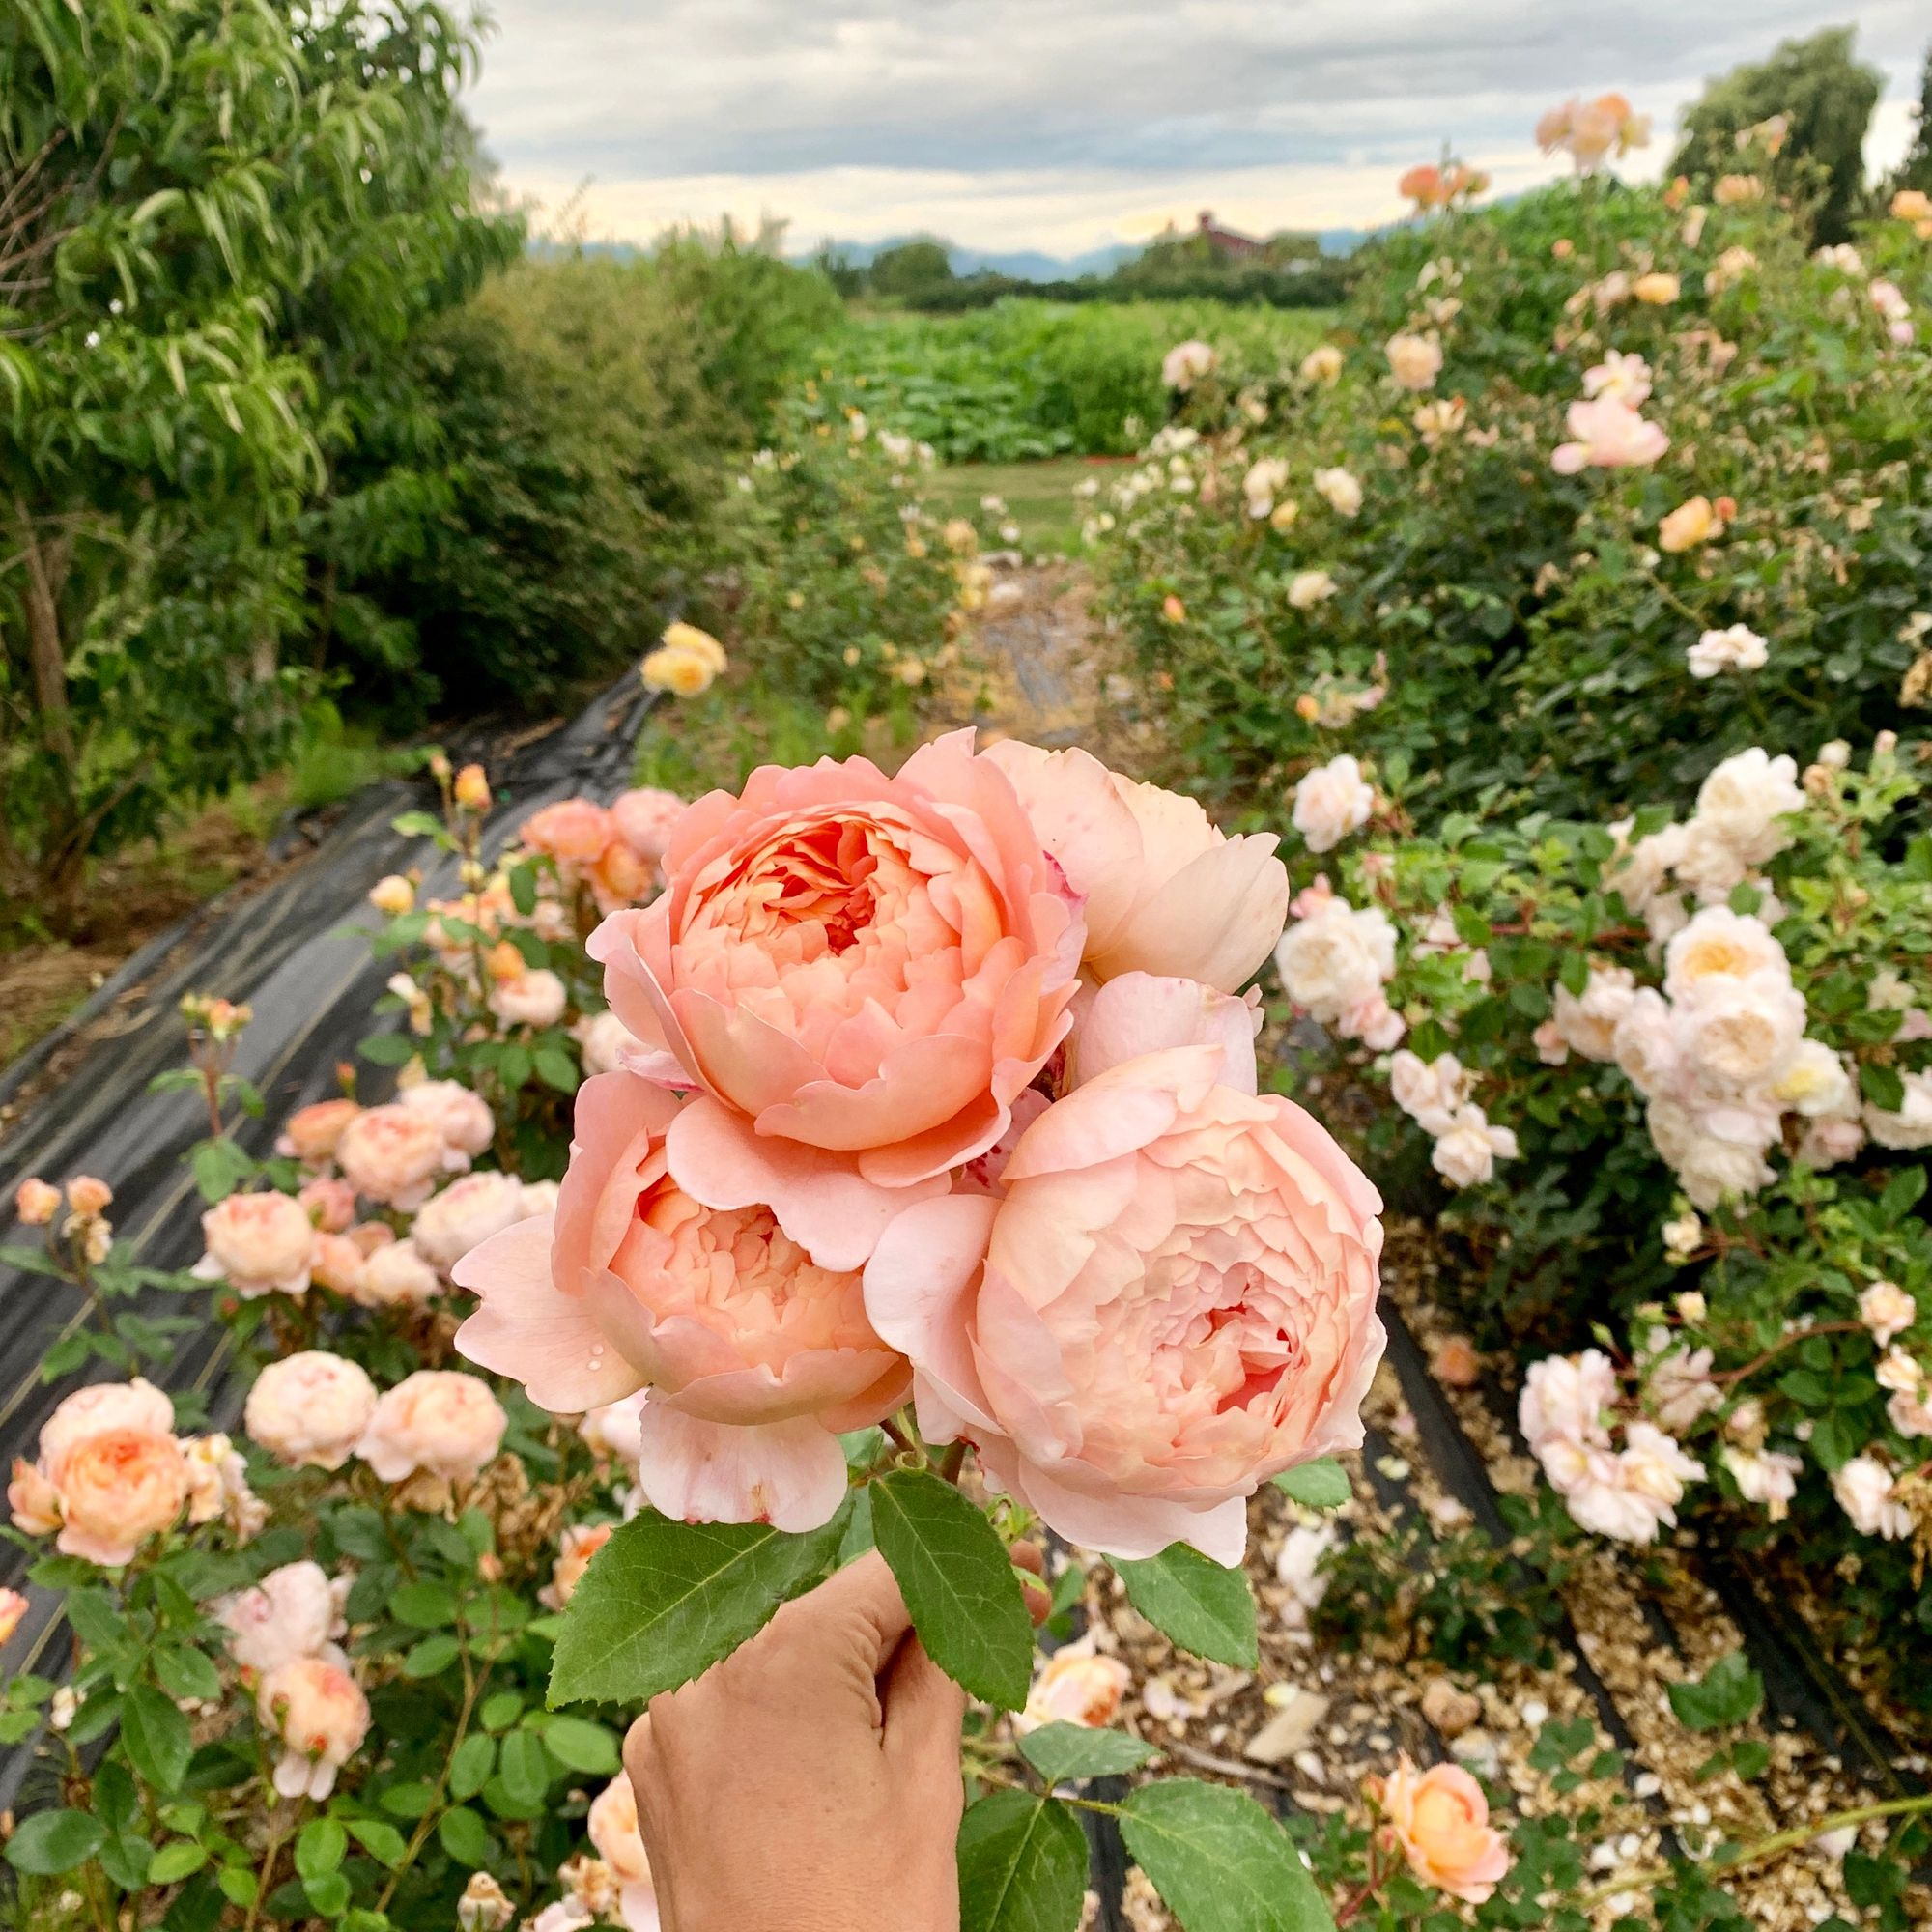 Even small spaces can accommodate roses in containers, raised beds, or narrow side yards. Garden Roses At Floret Flower Farm This Is A David Austin Rose Ambridge It S Soft Apricot Coloring And Fruity Sce Flower Farm David Austin Roses Austin Rose